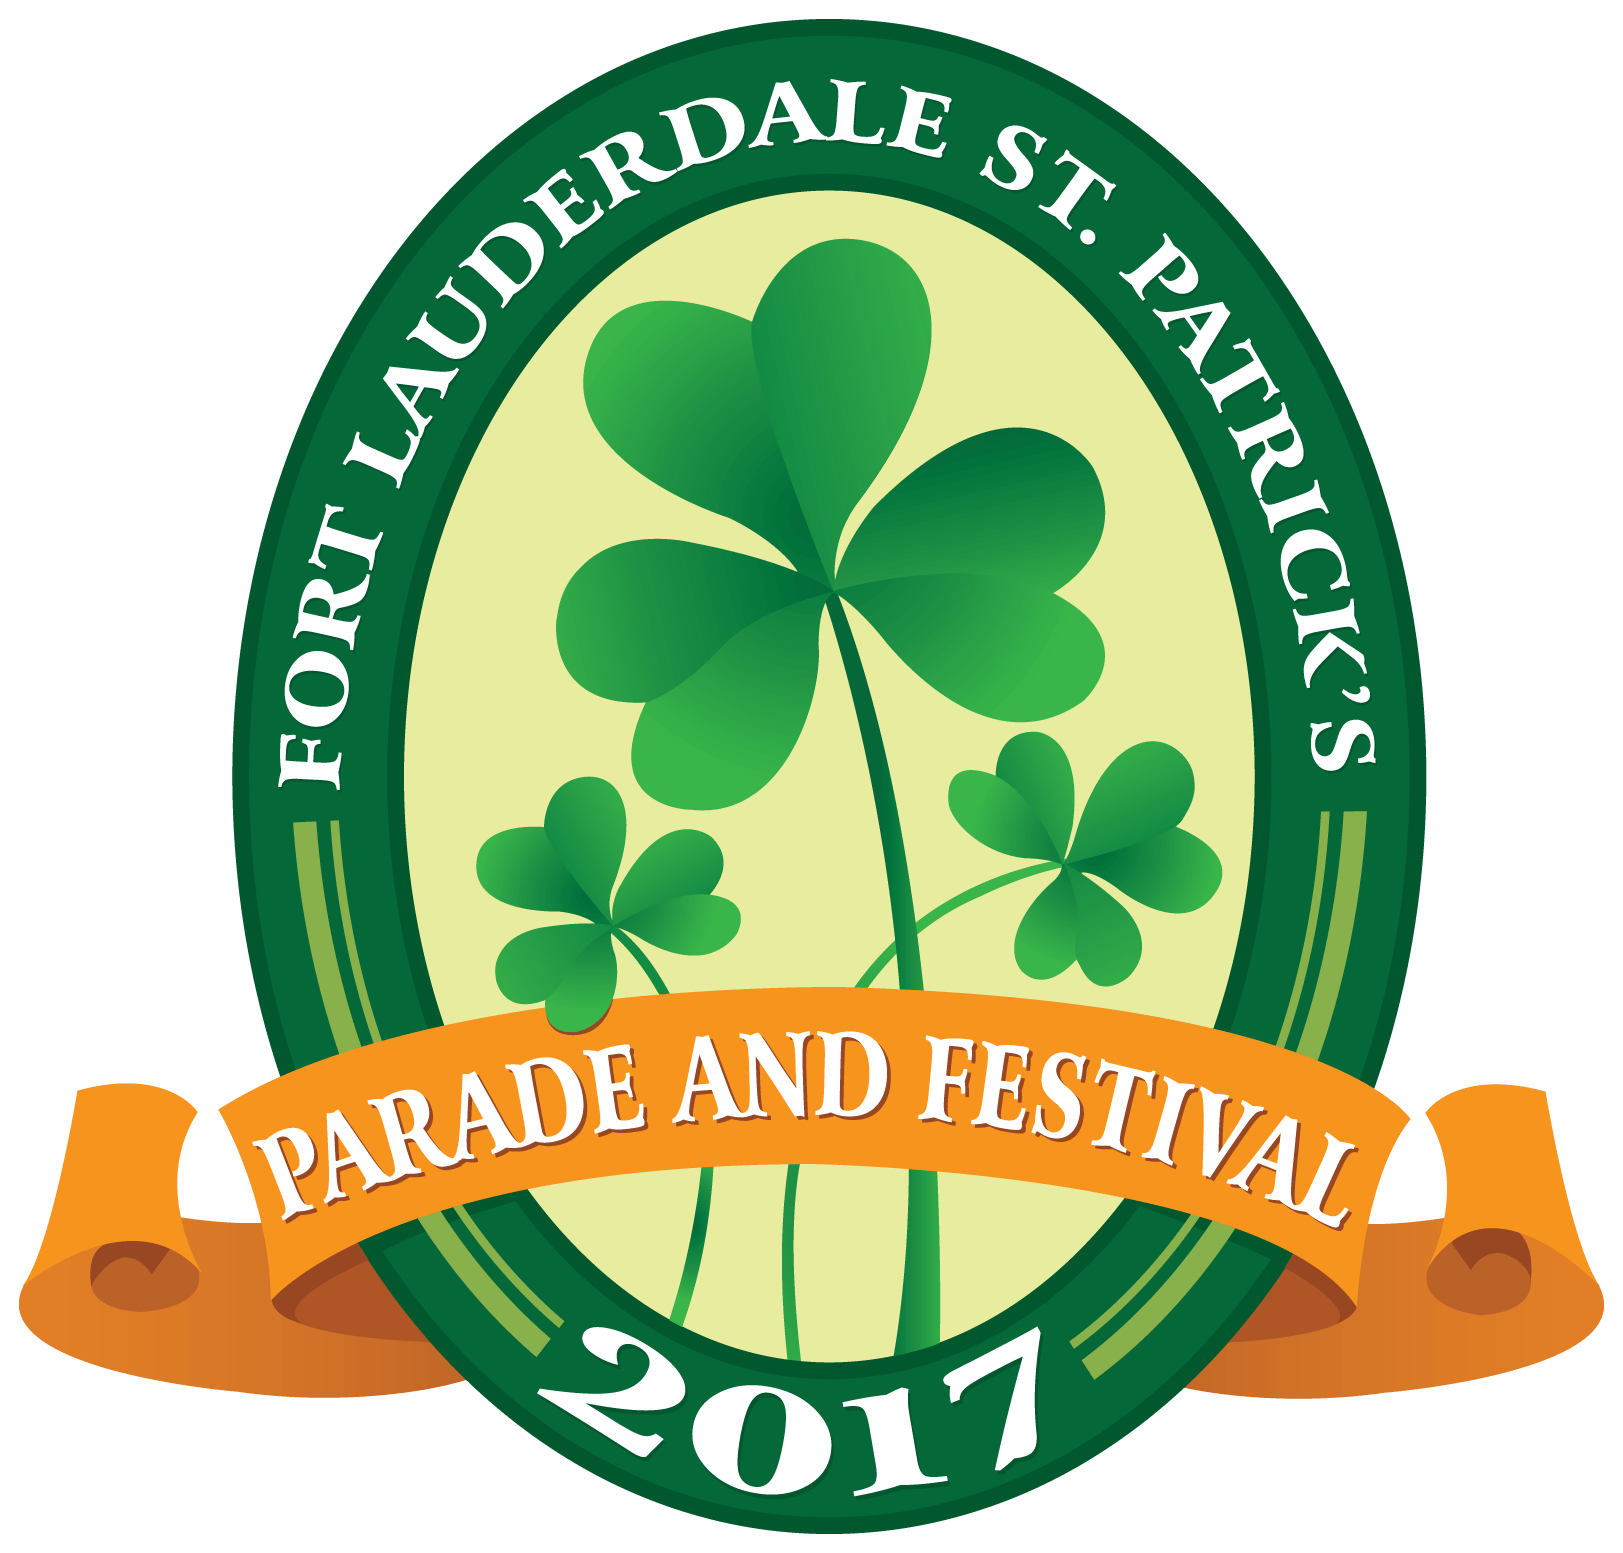 Fort Lauderdale St. Patrick's Day Parade & Festival.